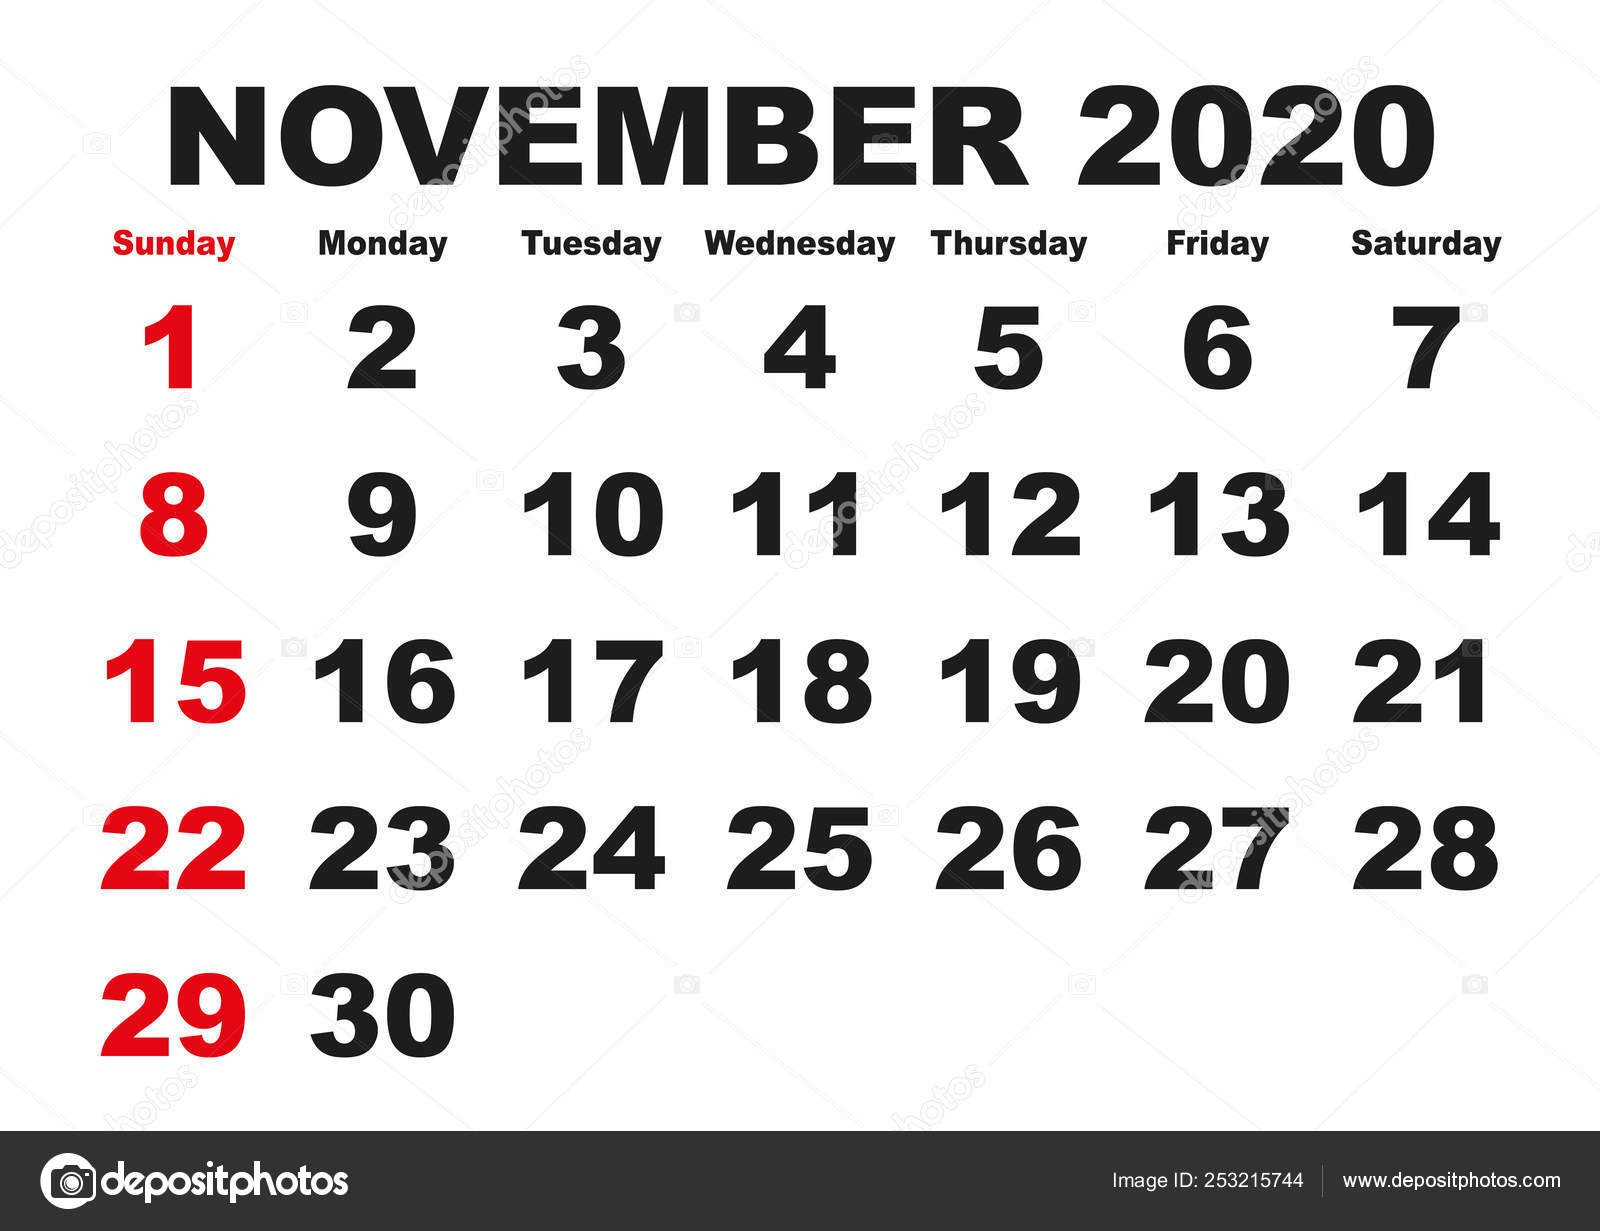 depositphotos stock illustration november month calendar 2020 english